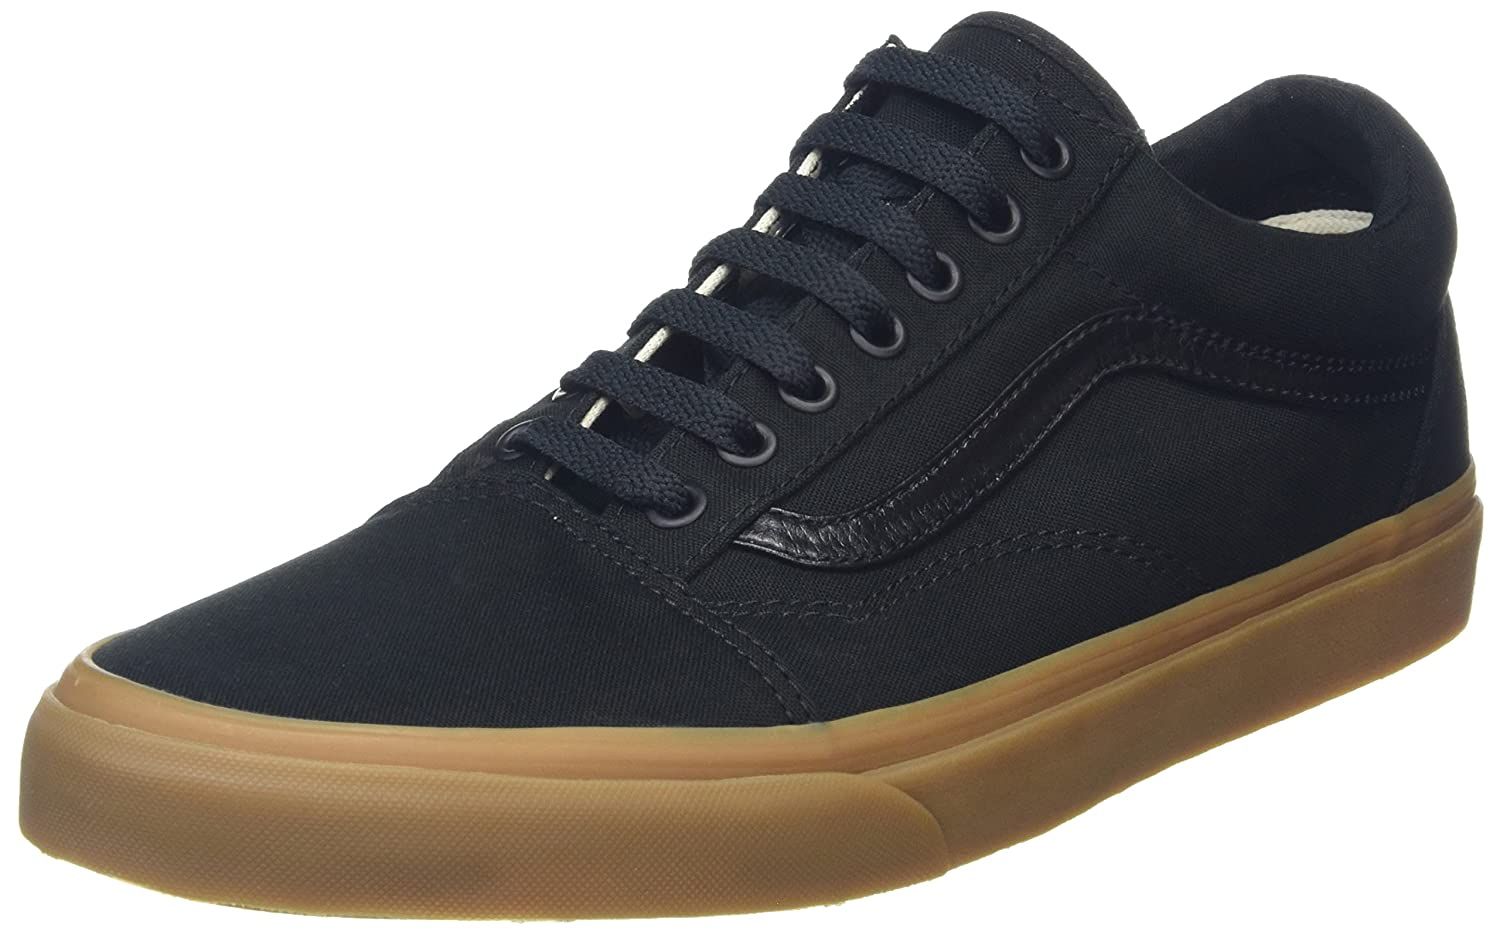 Vans Unisex Old Skool Classic Skate Shoes B01CRB642W 7 B(M) US Women / 5.5 D(M) US Men|Black Gum